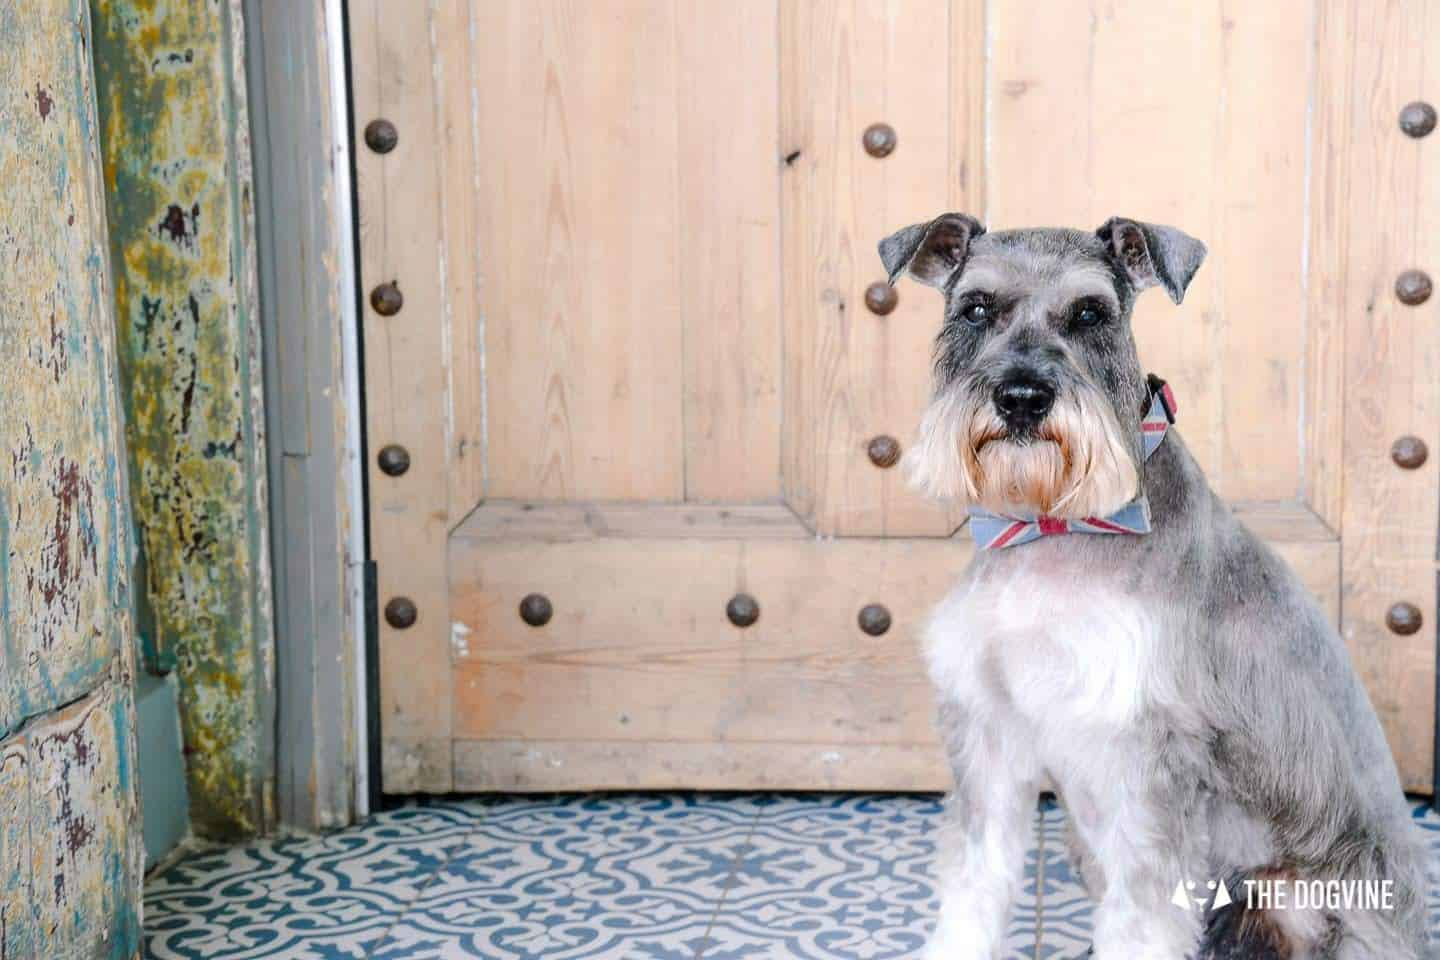 My Dog Friendly London By Pepper Chung the Schnauzer - Dog Friendly Notting Hill 7